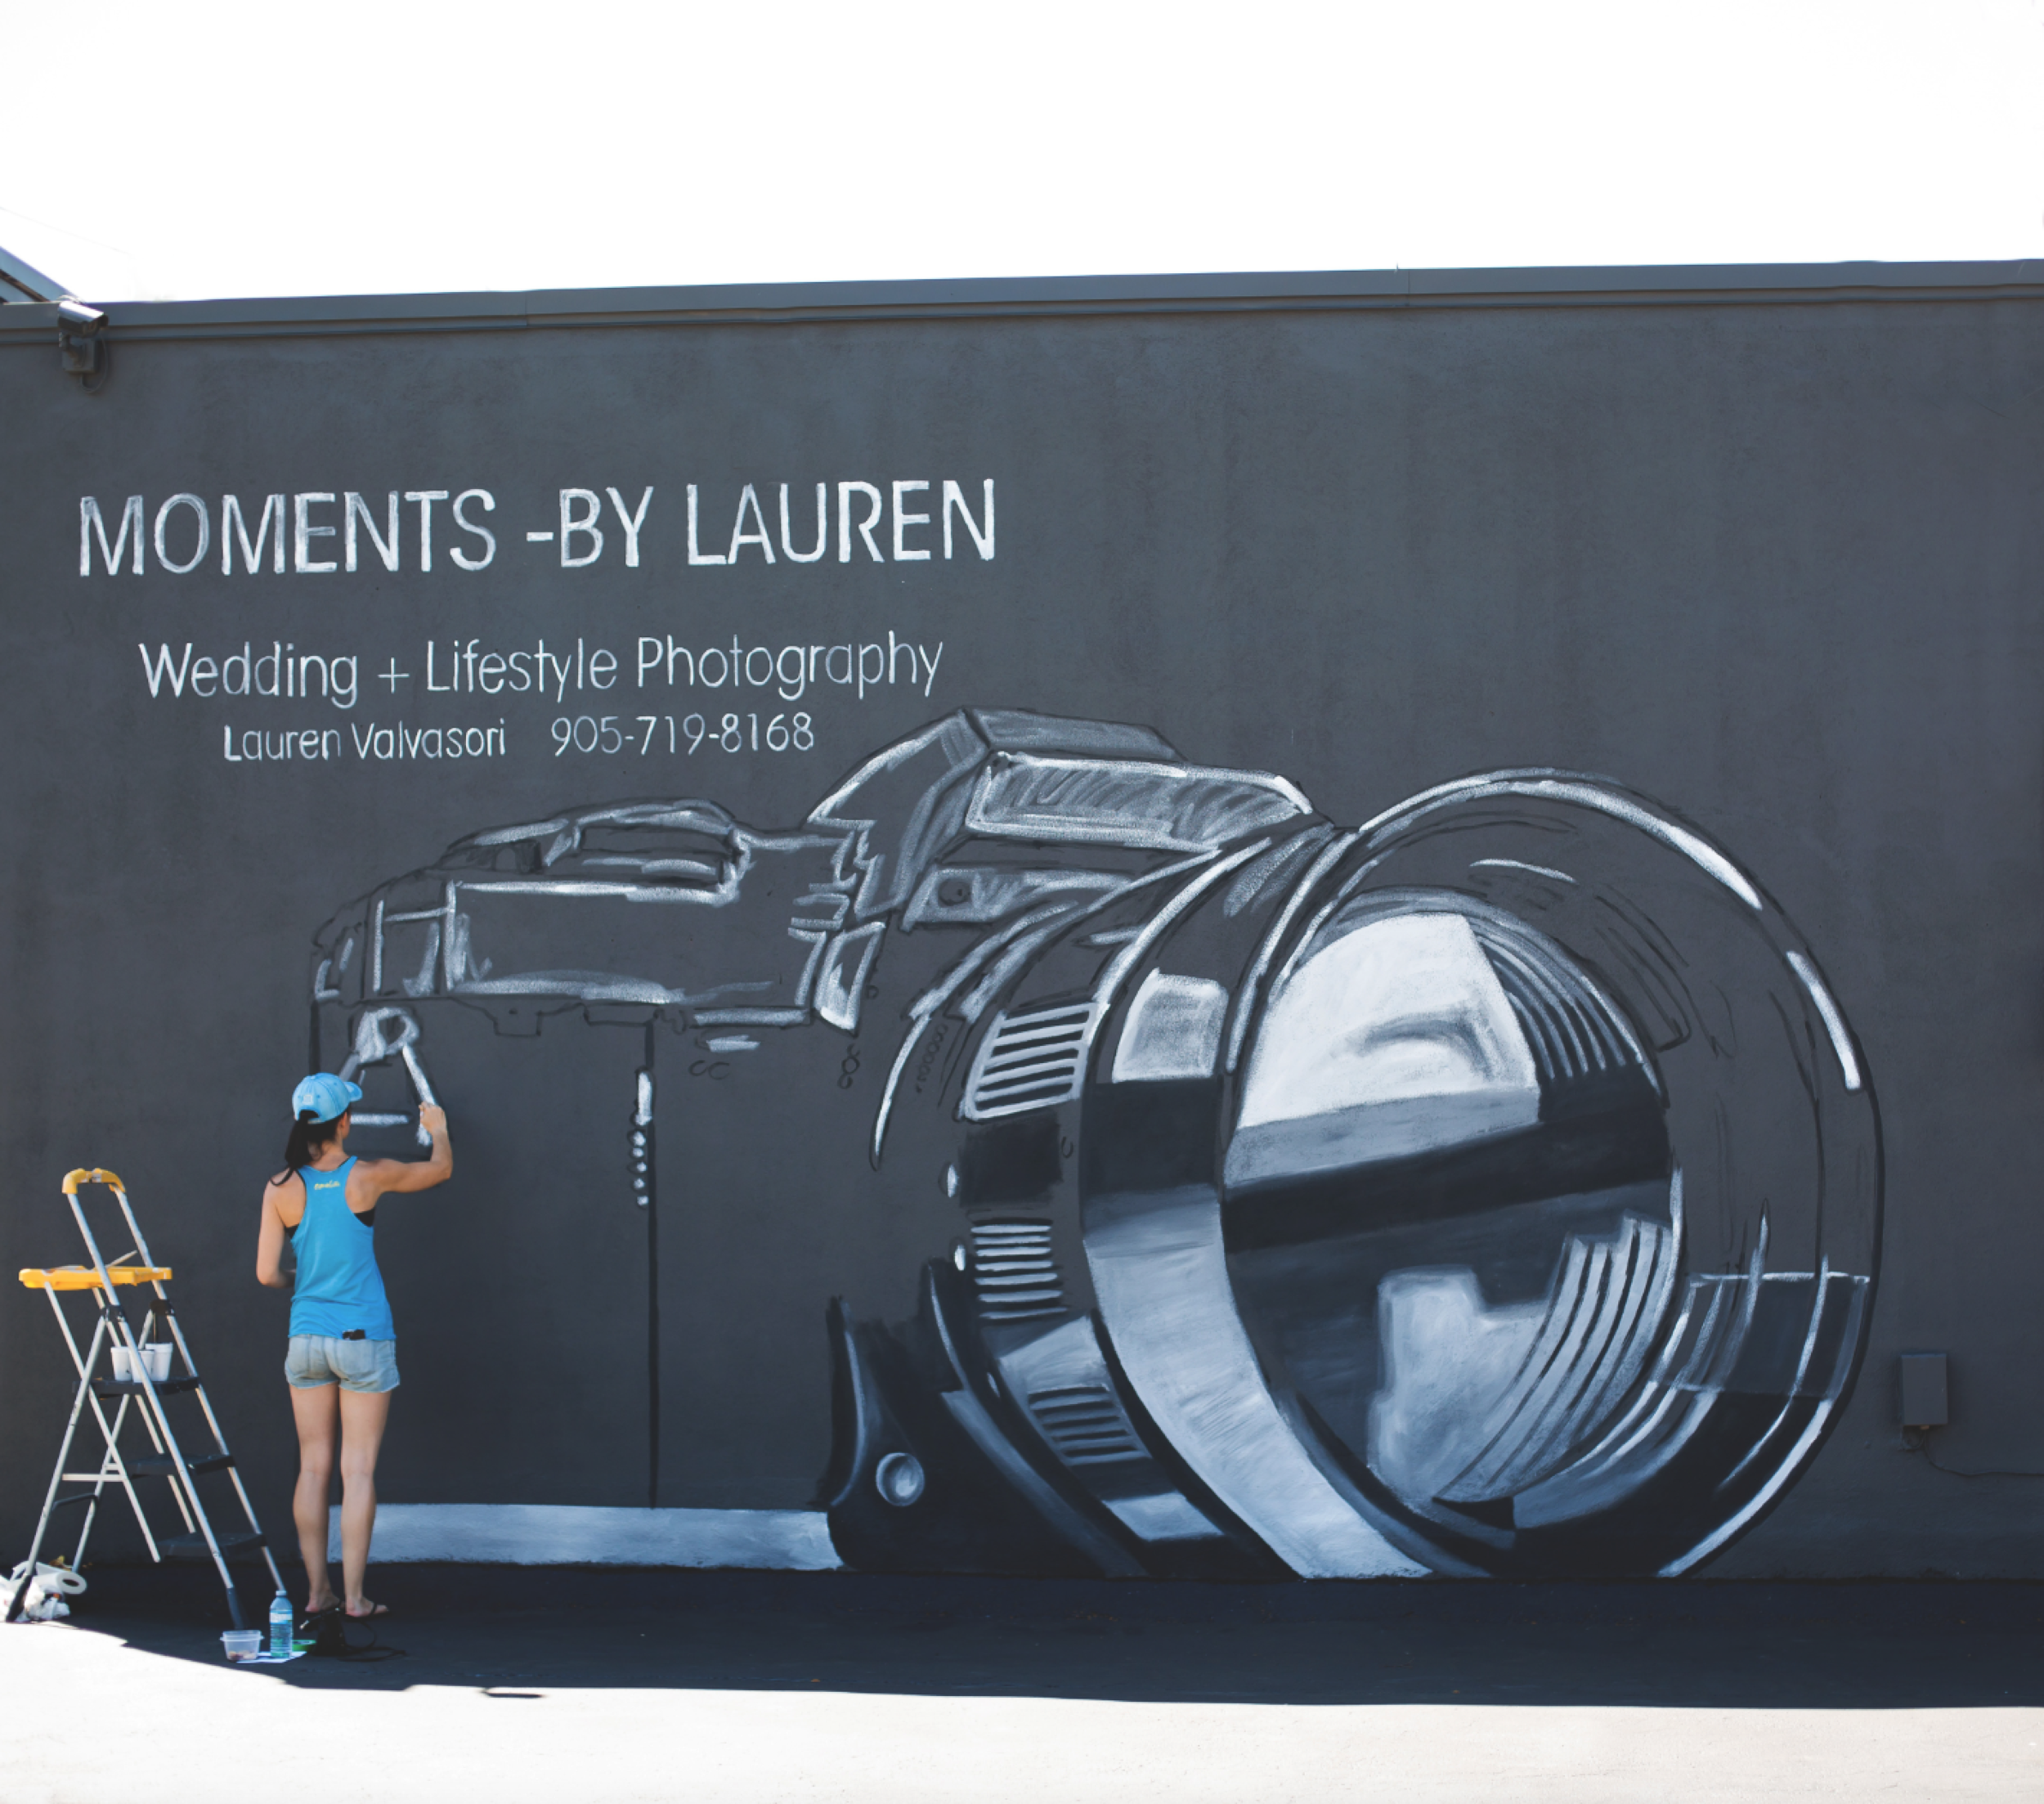 Moments-by-Lauren-Camera-Mural-Claire-Hall-Design-Photo-5.png